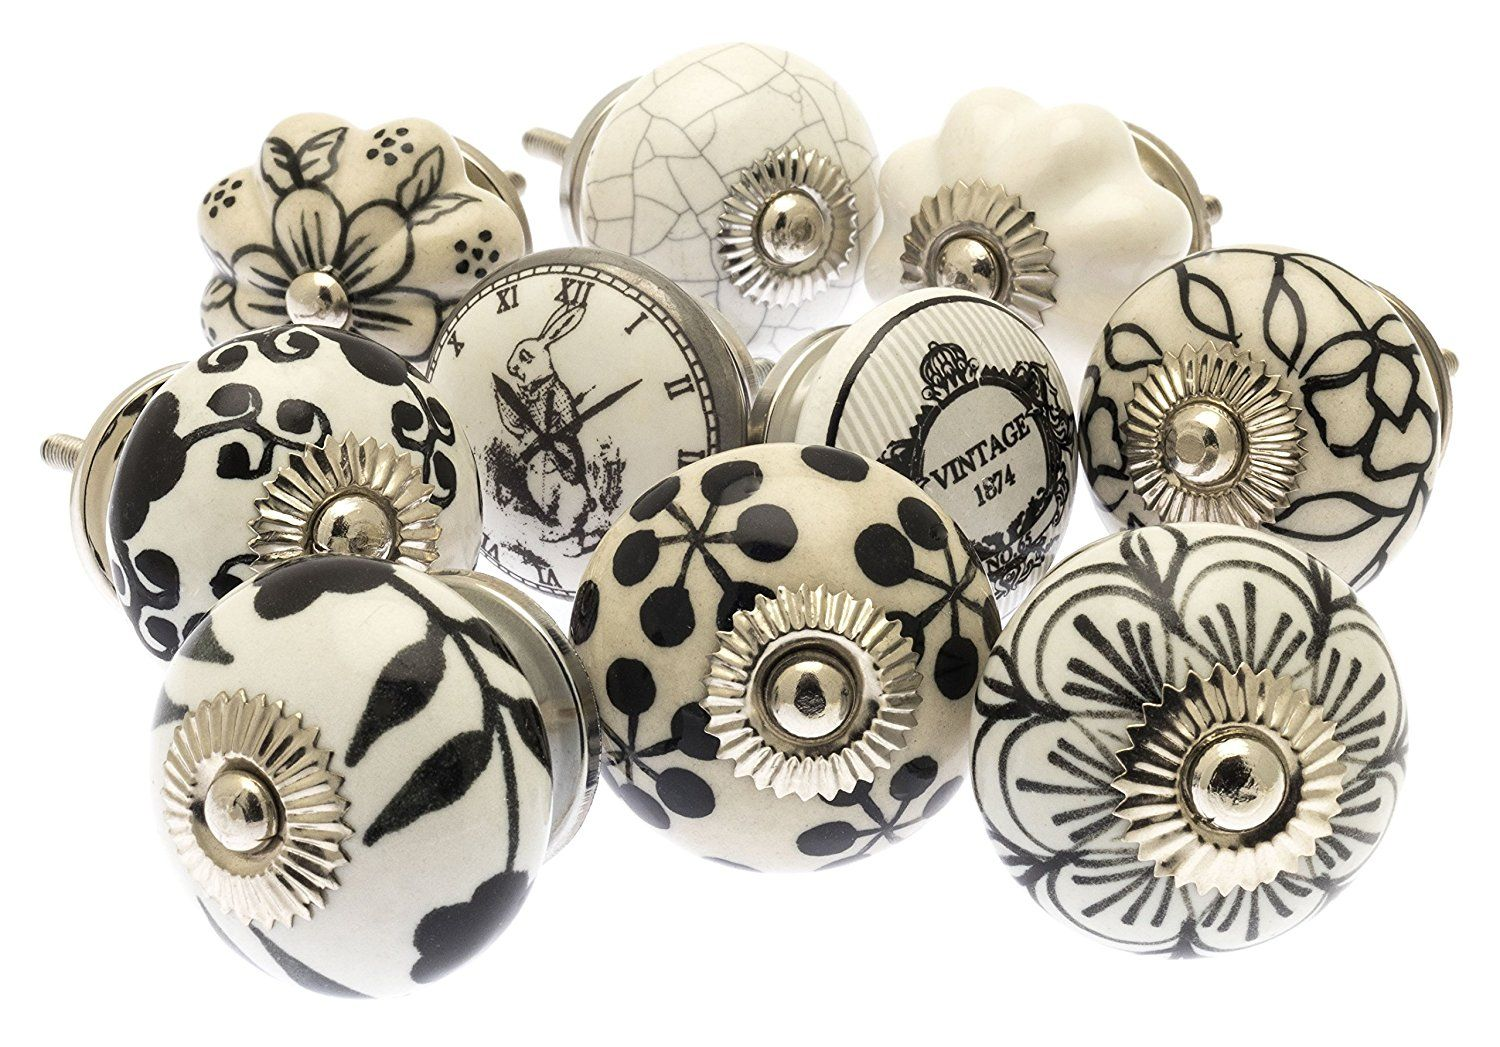 Nicola Spring Ceramic Cupboard Drawer Knobs - Vintage Flower ...